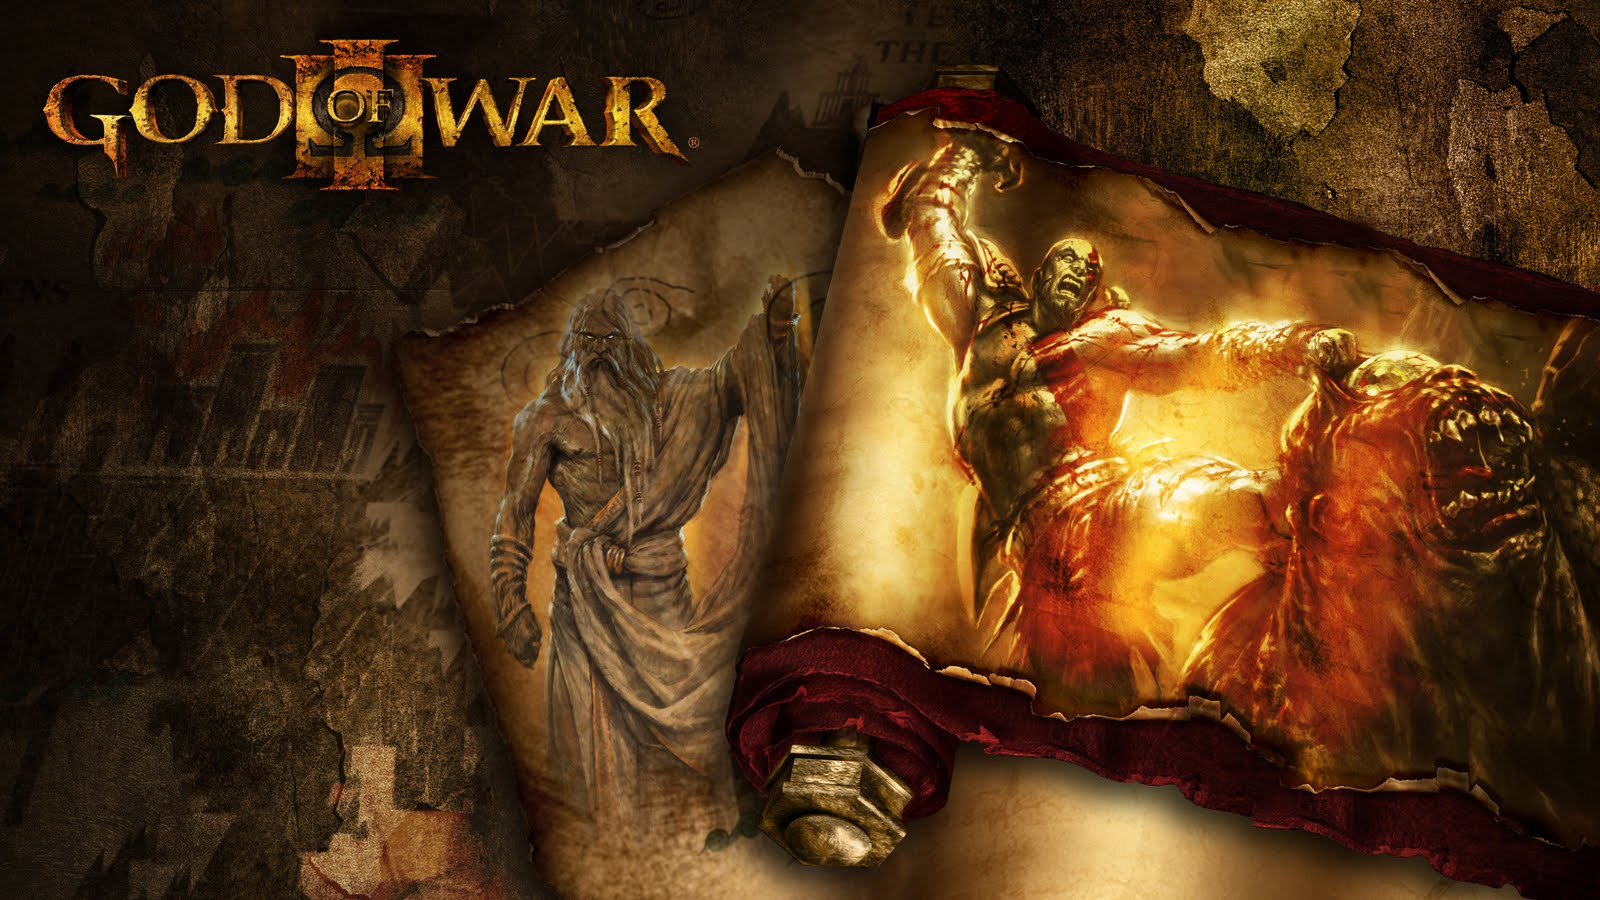 God of War 3 Wallpaper Wallpapers de God of War 3 hd